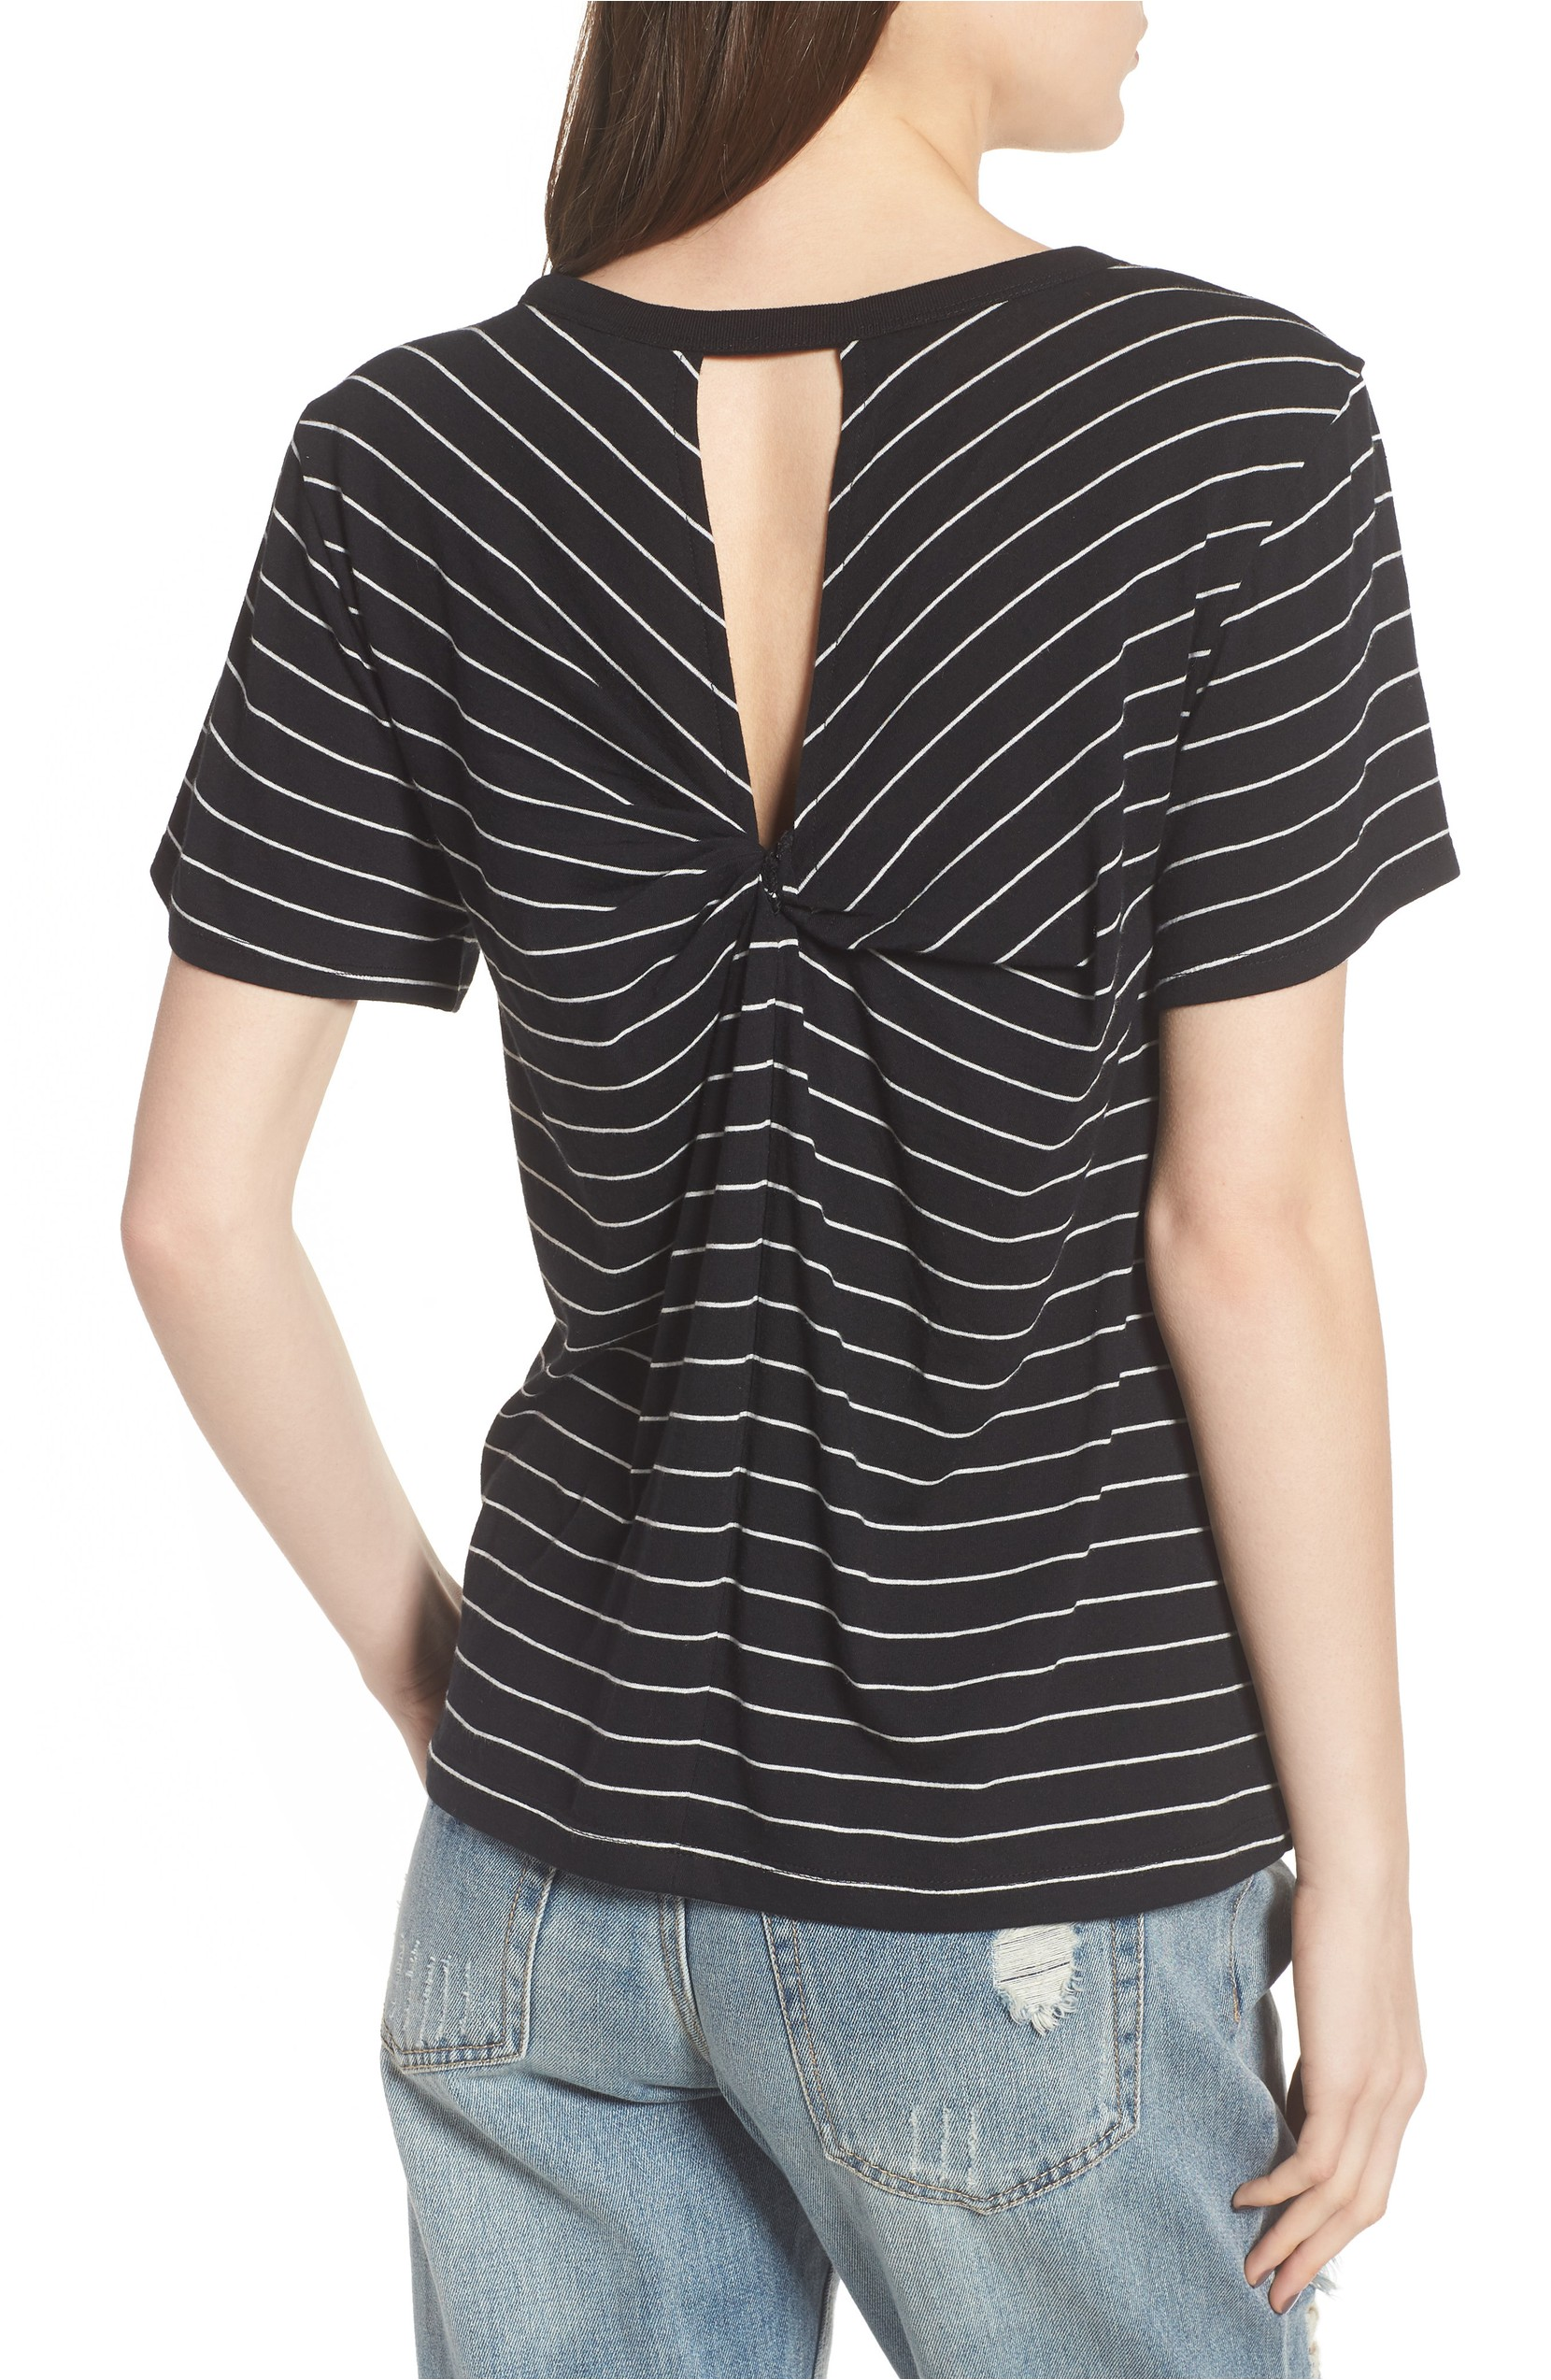 This Twist Back Tee was originally $25 and is now $14.98 A classic, supersoft tee gets a playful update with a twisted back cutout.<p>(Image: Nordstrom){&amp;nbsp;}</p>